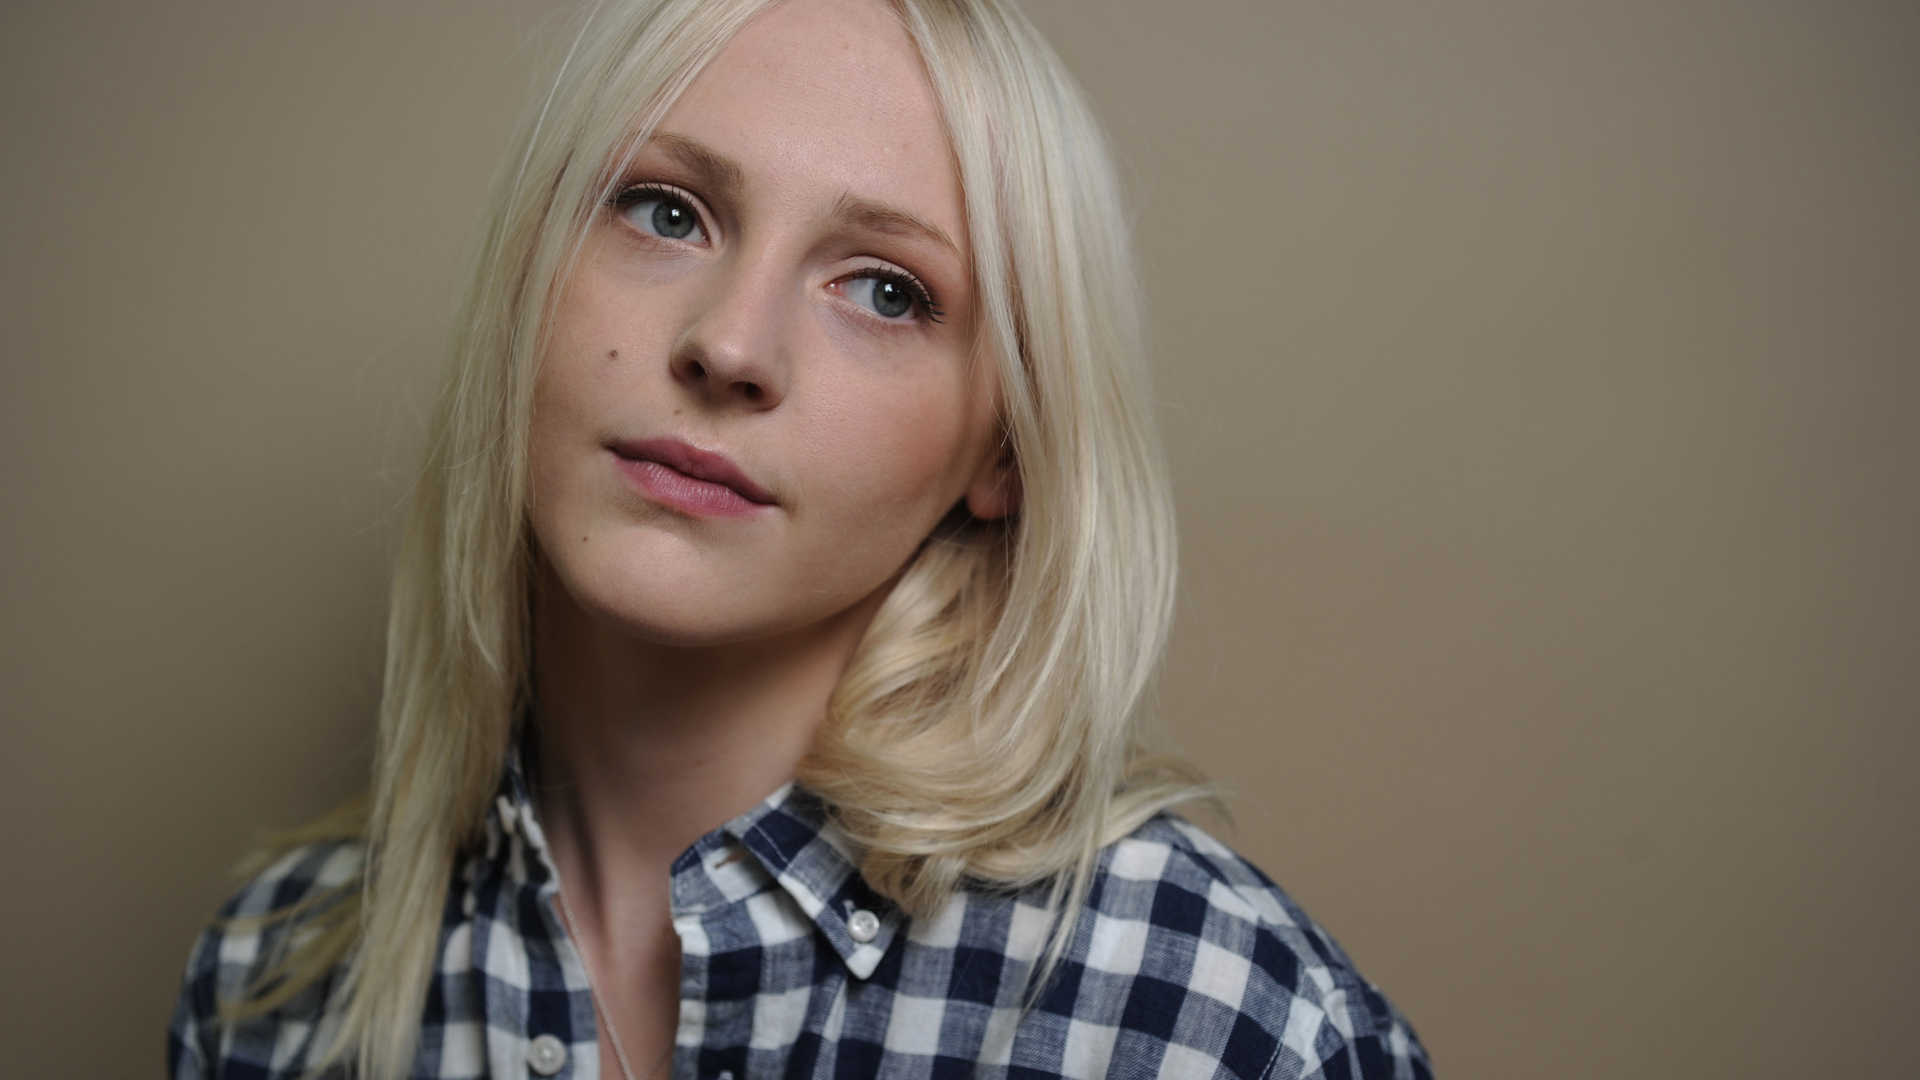 Laura marling music fanart fanart 0 voltagebd Image collections